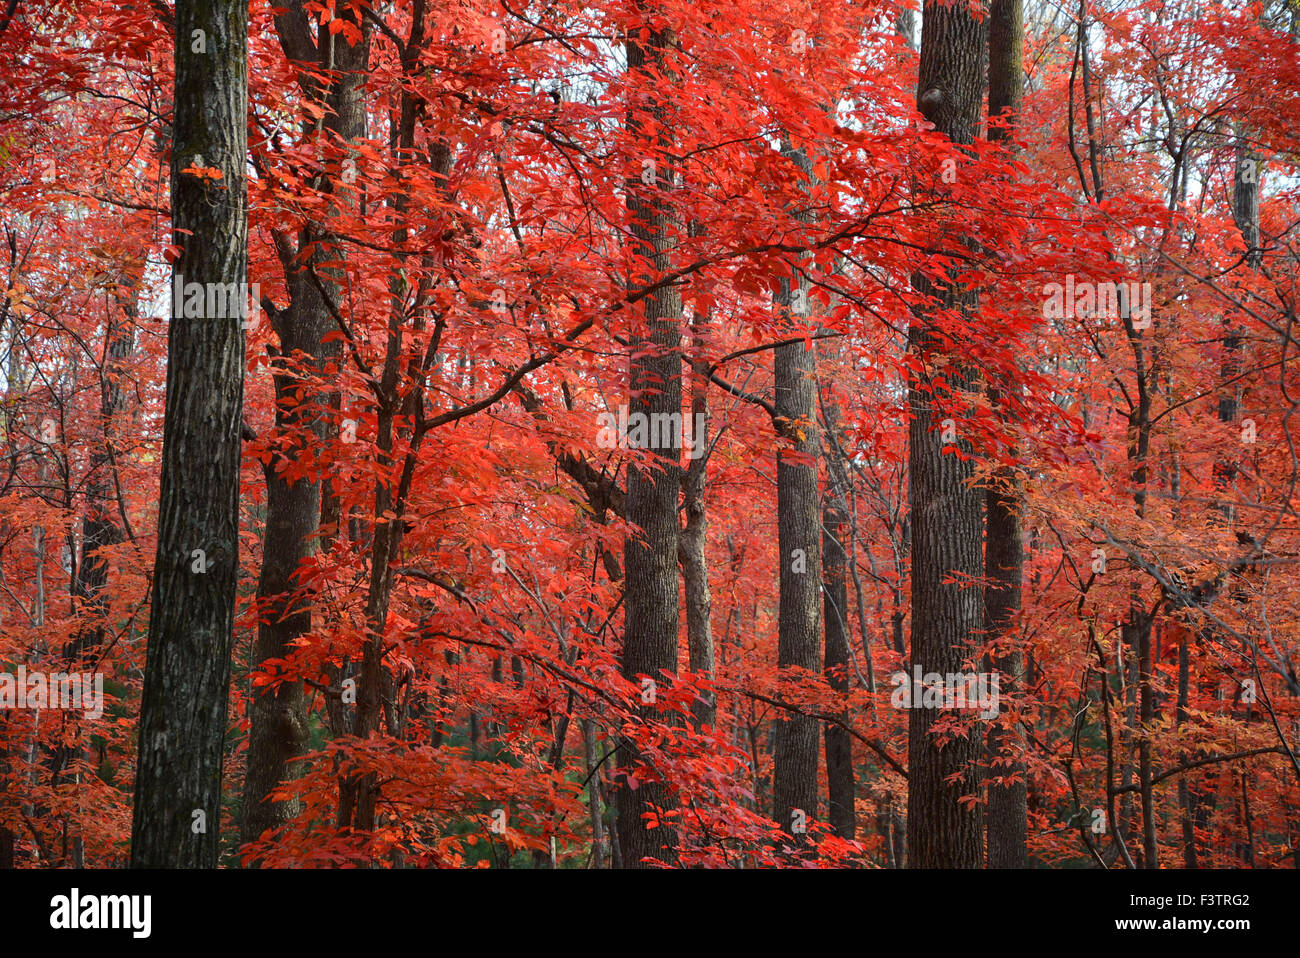 Beijing, China. 7th Oct, 2015. Photo taken on Oct. 7, 2015 shows the red autumnal leaves in Shulan City, northeast - Stock Image